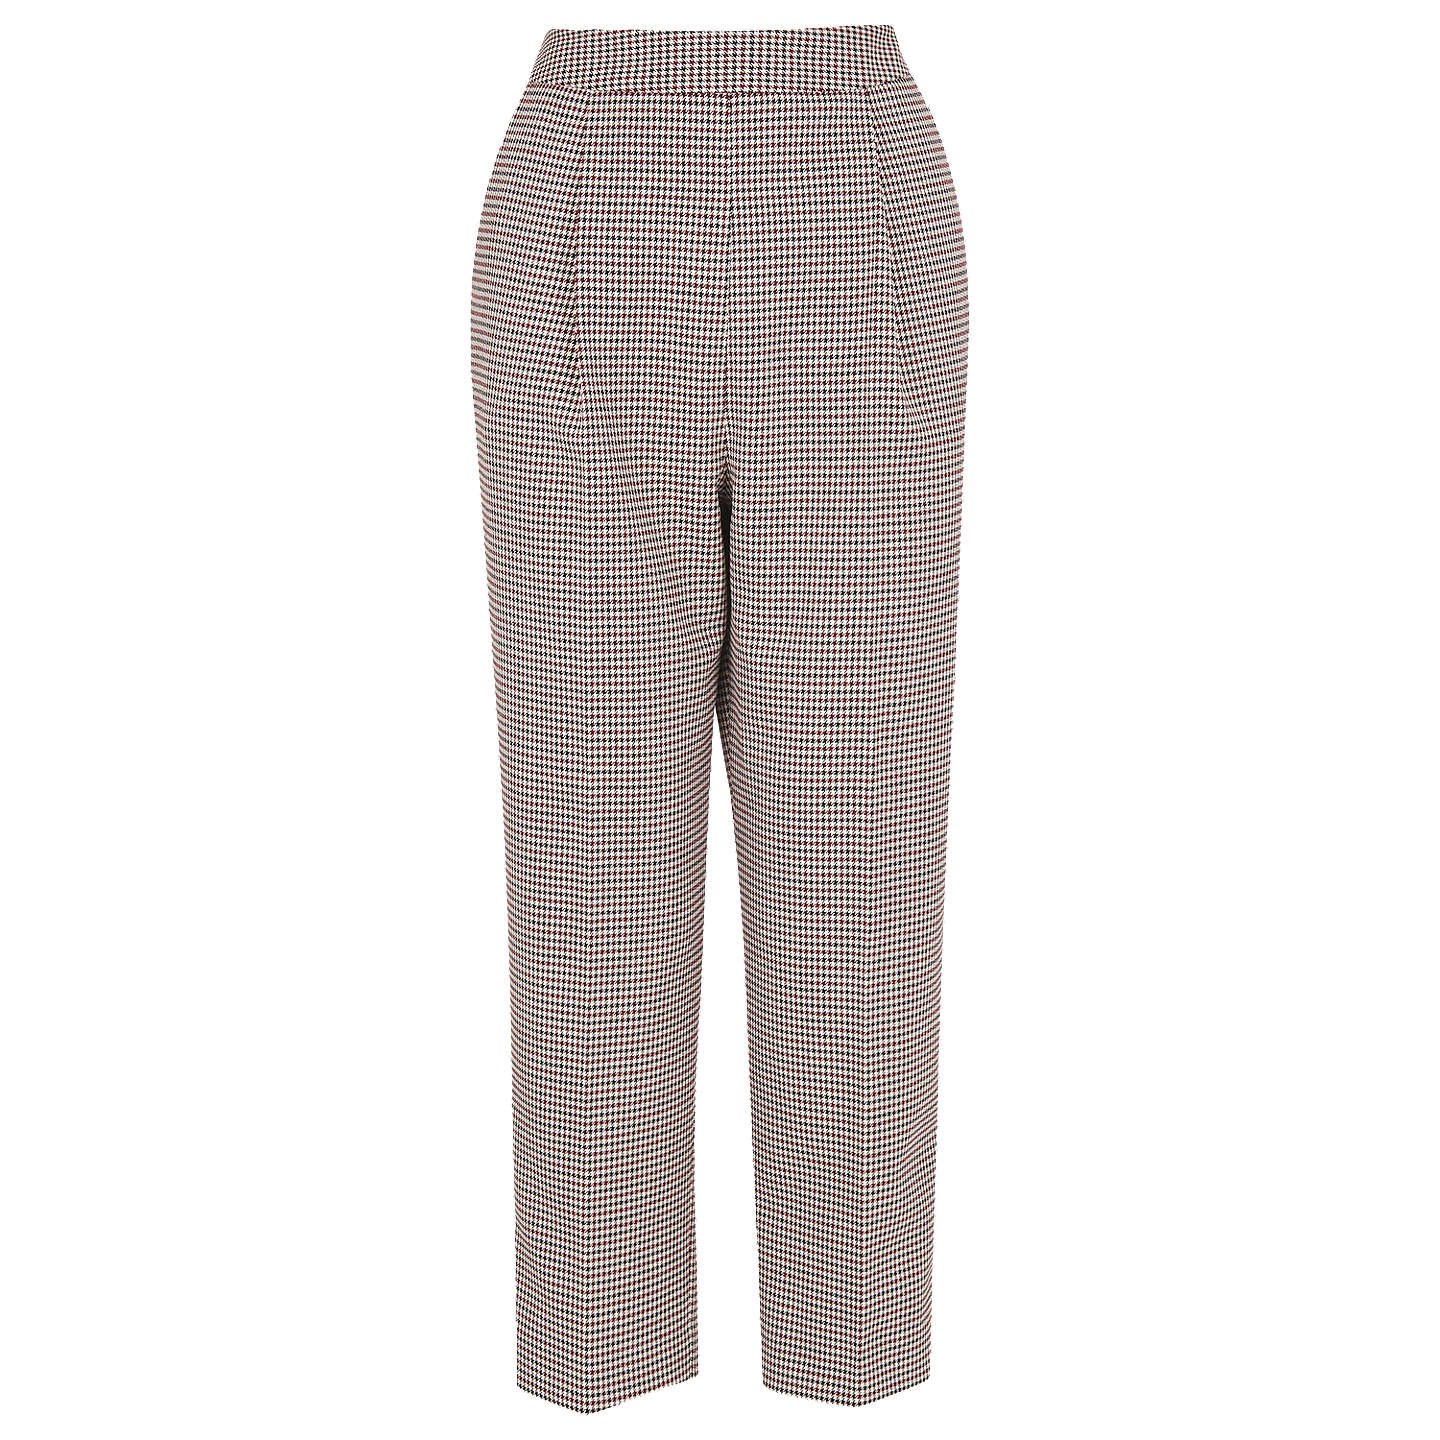 BuyWhistles Mini Check Cropped Trousers, Multi, 8 Online at johnlewis.com